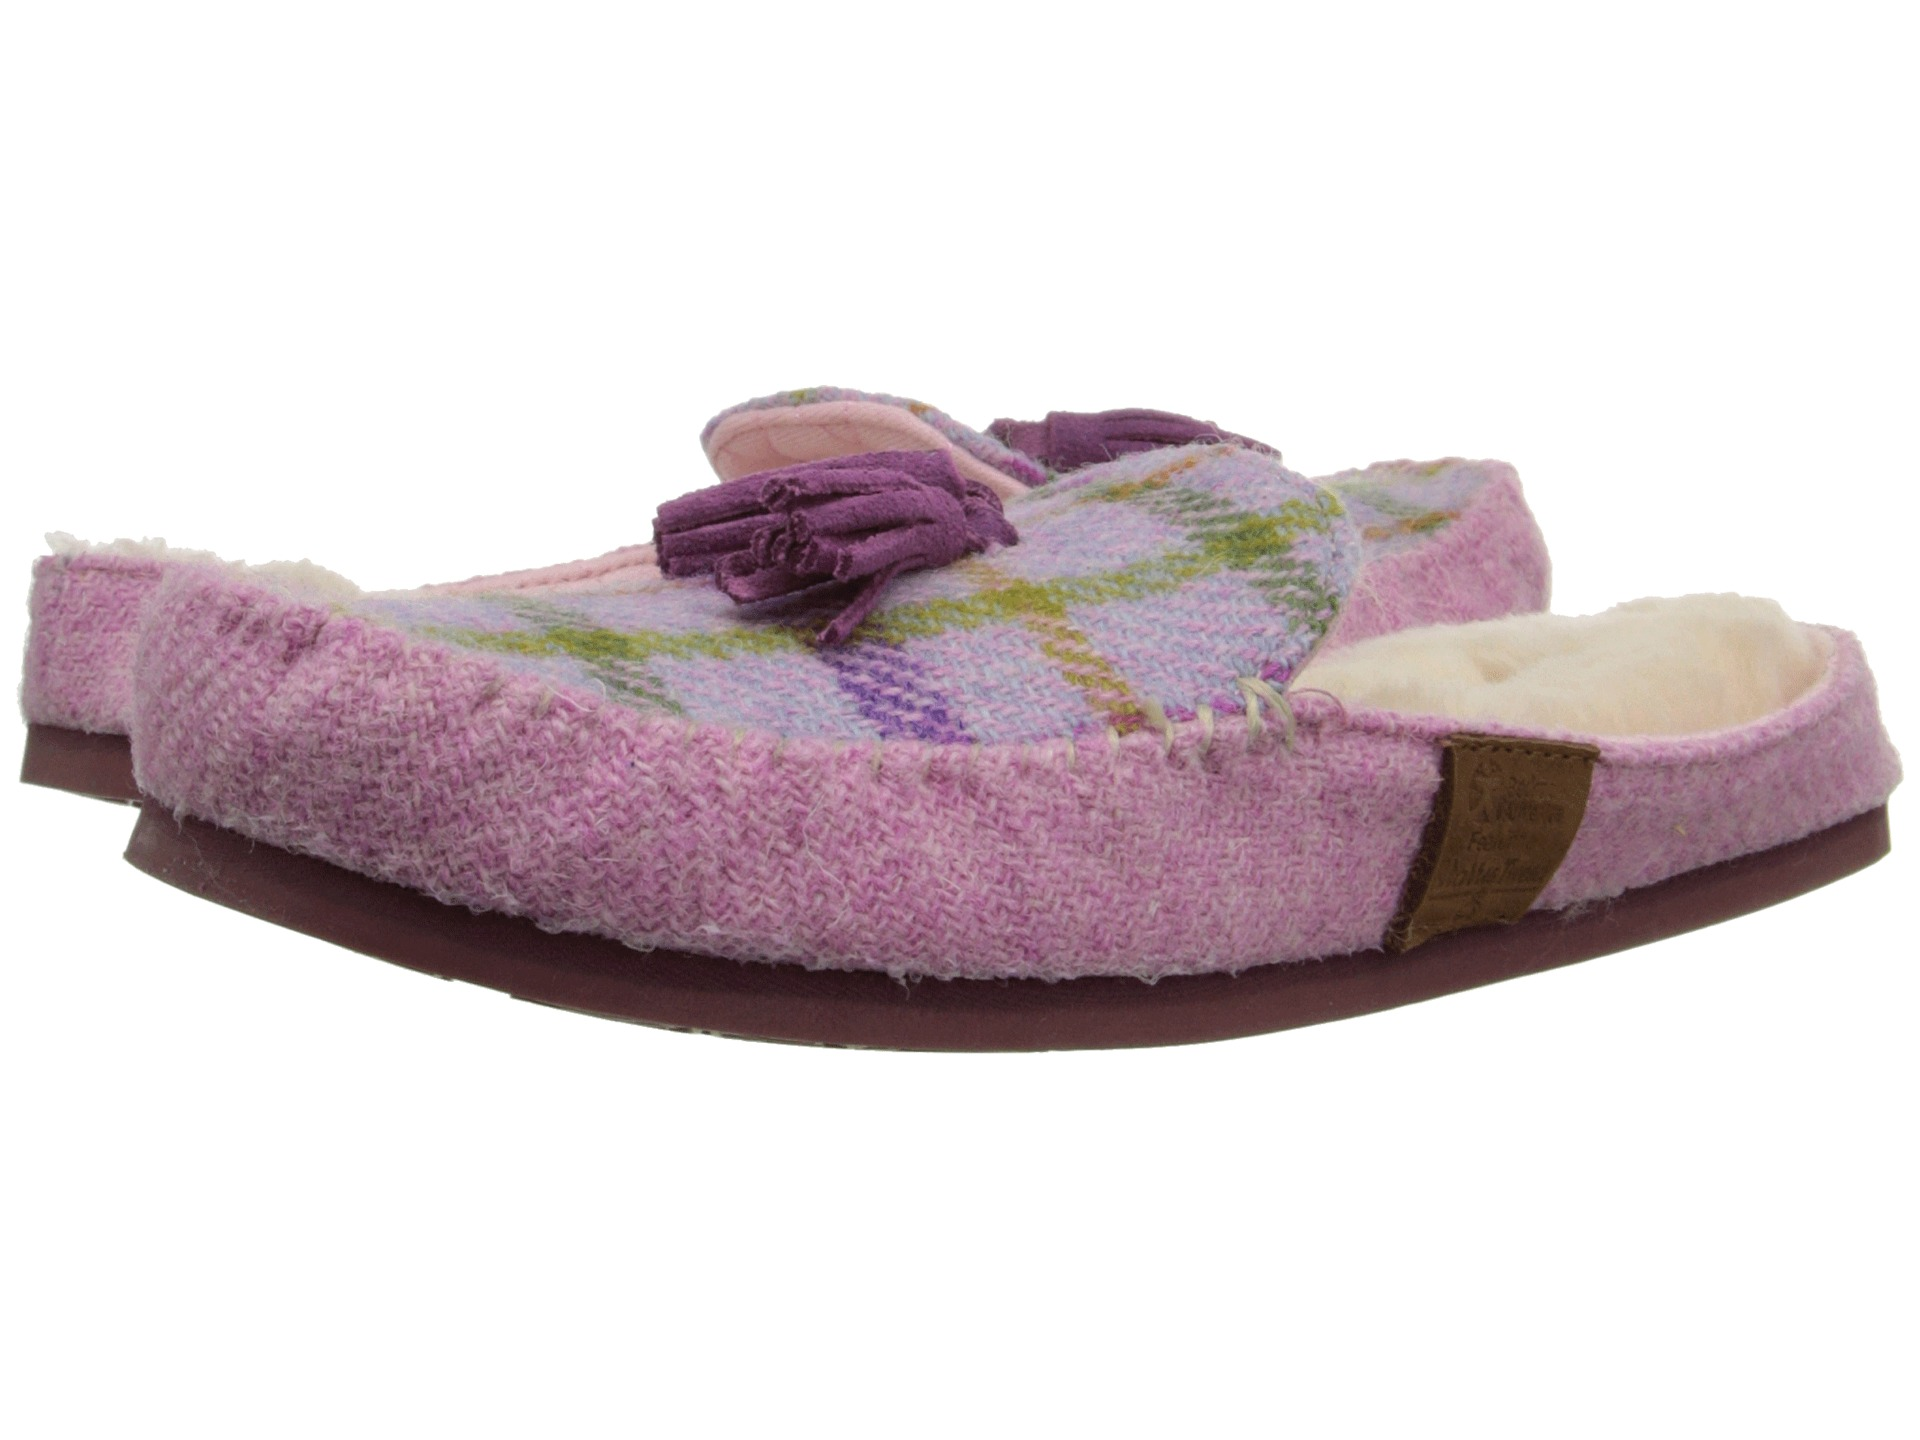 macys womens bedroom slippers 28 images product not available macy s frye s melanie slip on. Black Bedroom Furniture Sets. Home Design Ideas